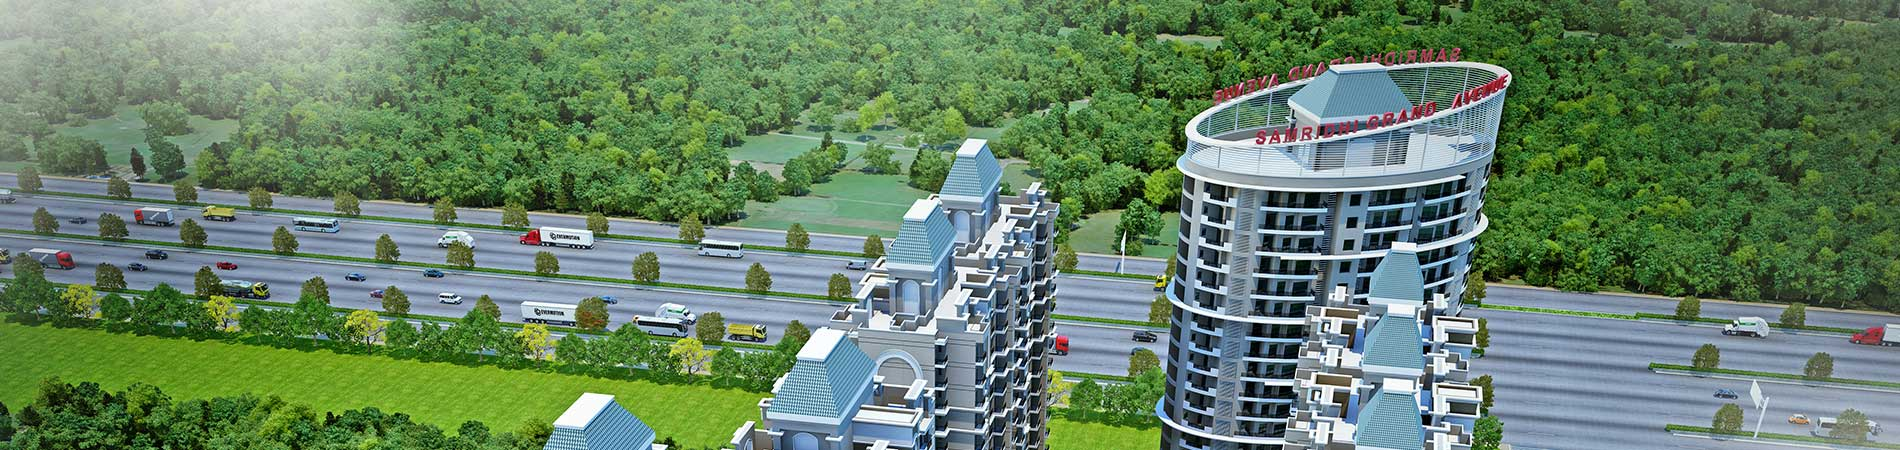 2 bhk, 3 bhk flats in greater noida west - samridhi grand avenue